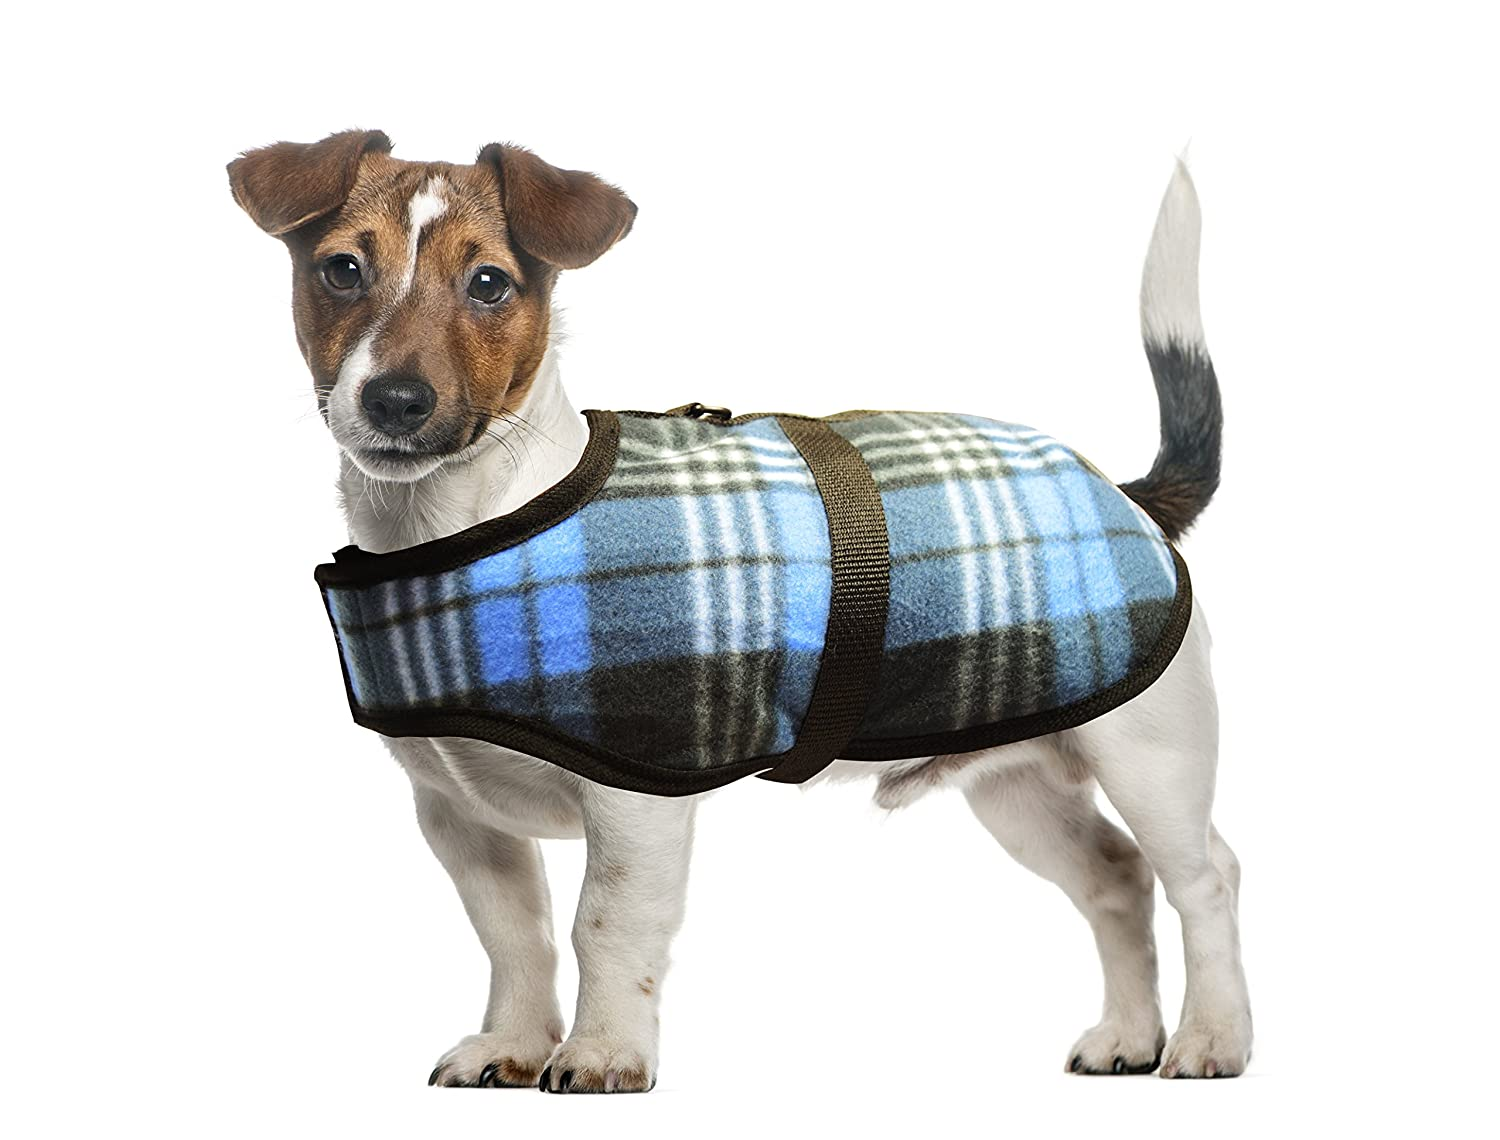 bluee X-Small bluee X-Small All Seasons Puppy Fleece Jacket for Small Dogs and Puppies for Outfits for Boy Dogs (1X Small bluee)